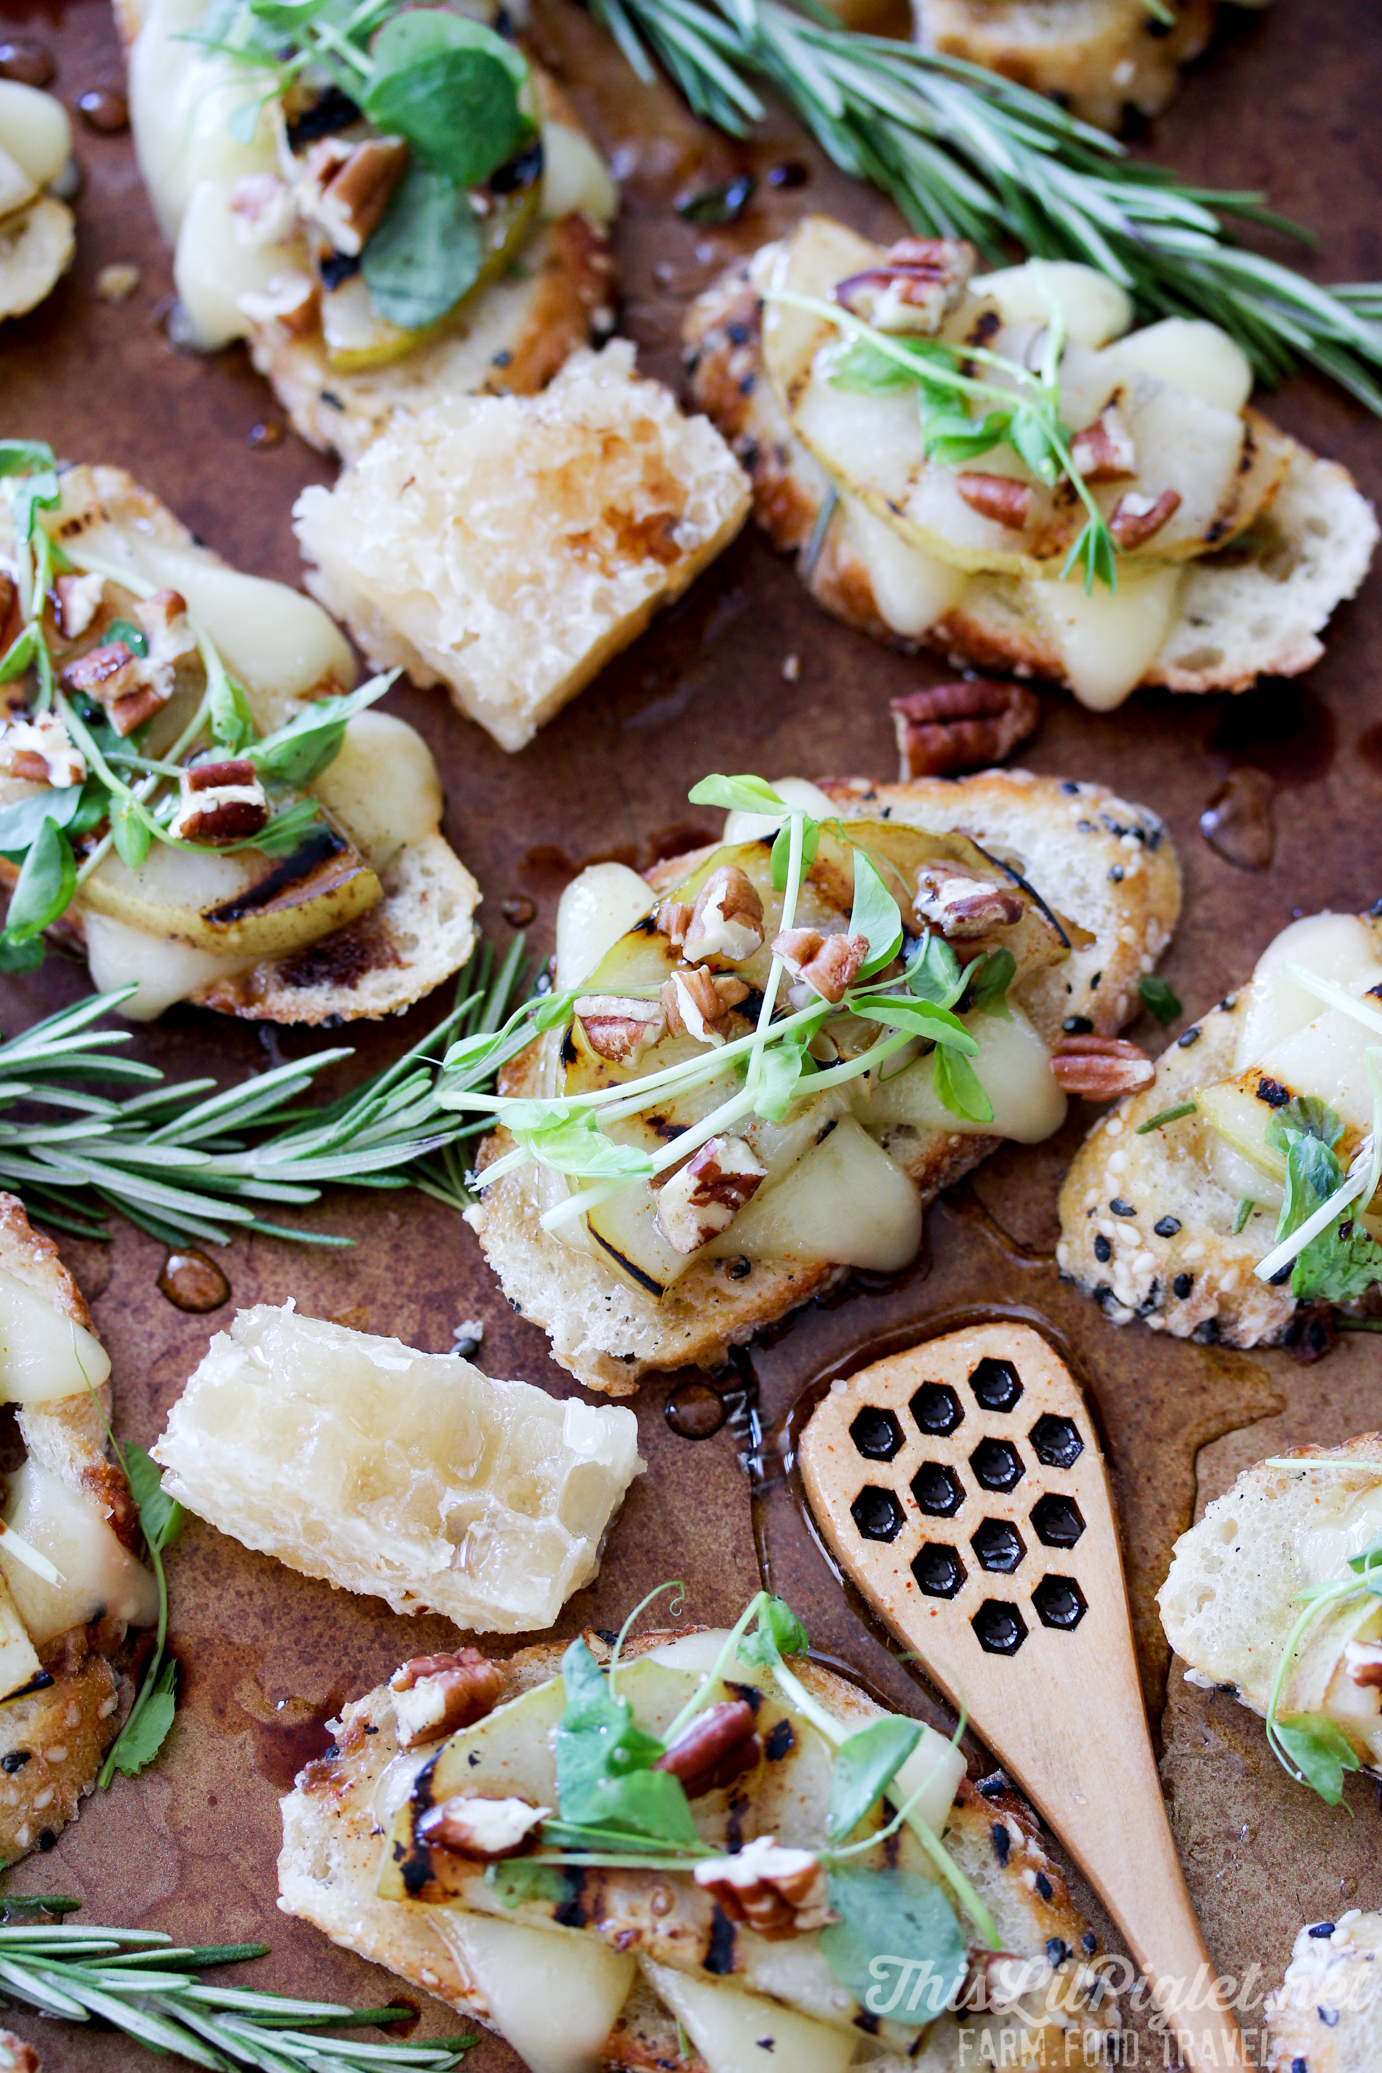 Grilled Pear Crostini with Cheese and Spiced Honey Pecan and Balsamic Drizzle // thislilpiglet.net